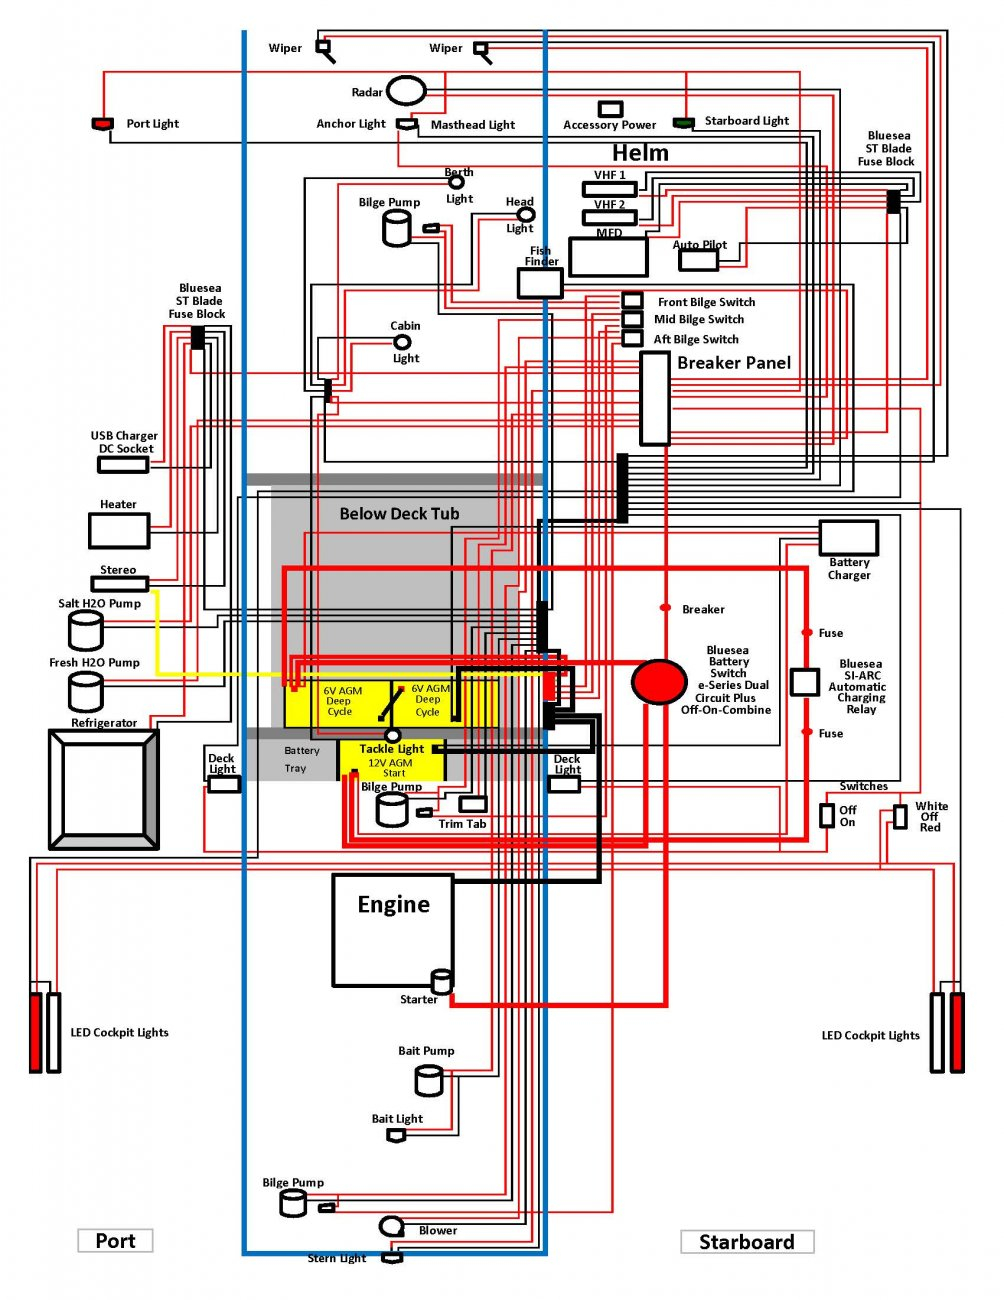 Boat Dc Wiring Diagram | Digital Resources Boat Dc Wiring Diagram on